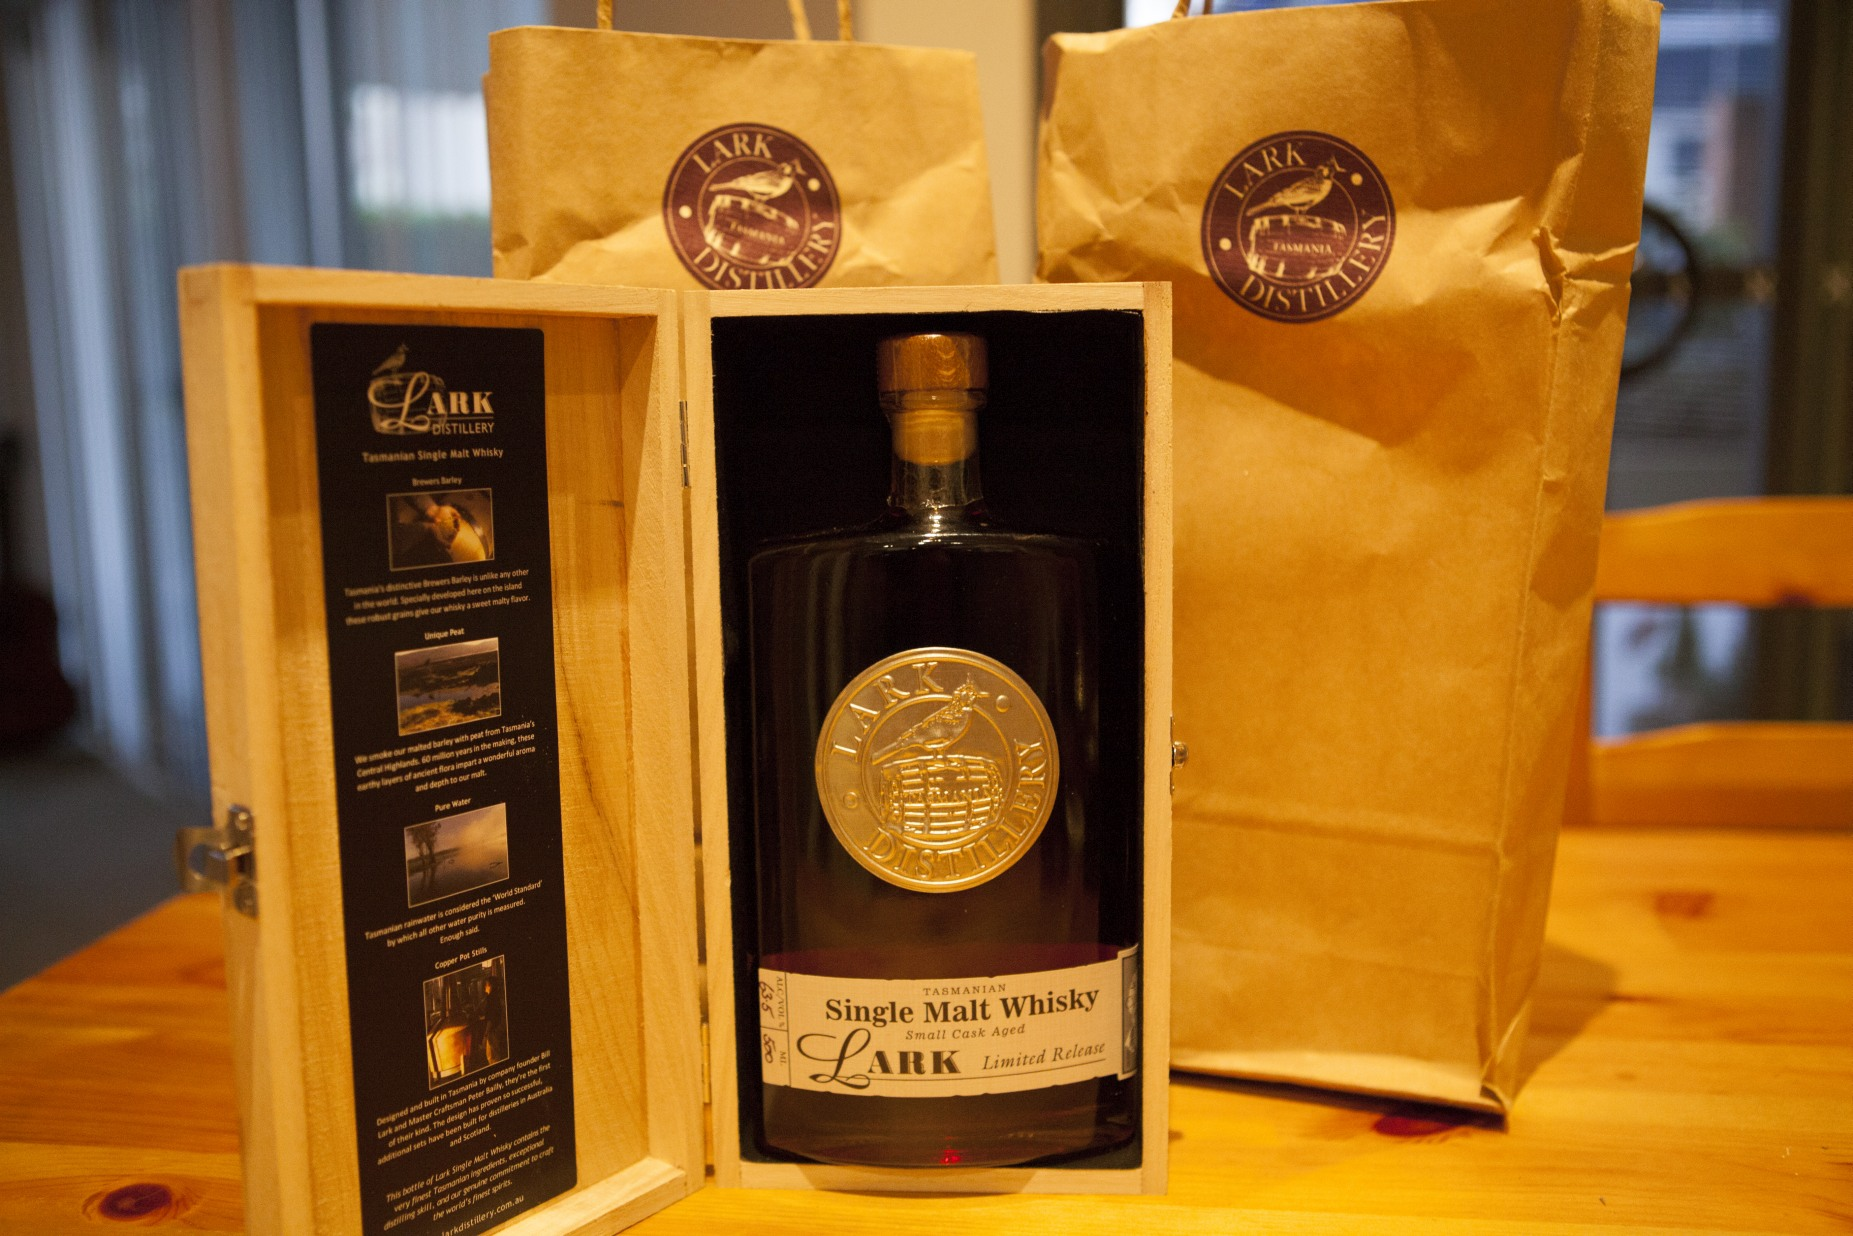 Lark Limited Release Sherry Cask 2012 Whisky Review